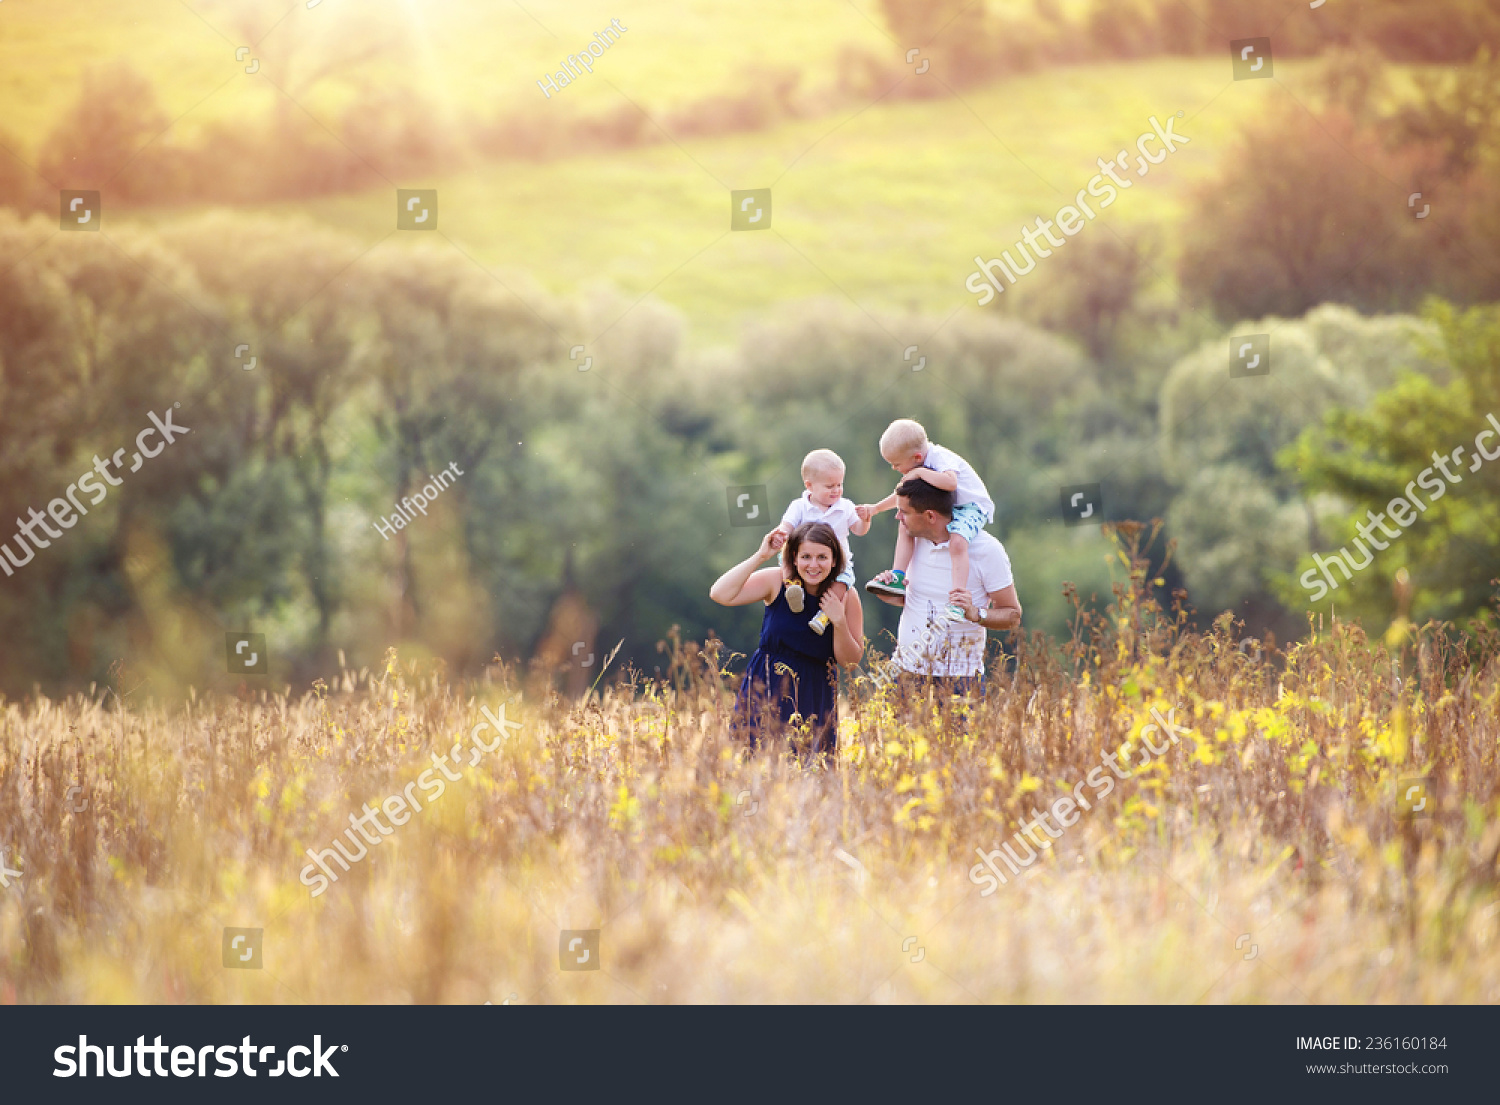 Happy Family Enjoying Life Together Meadow Stock Photo